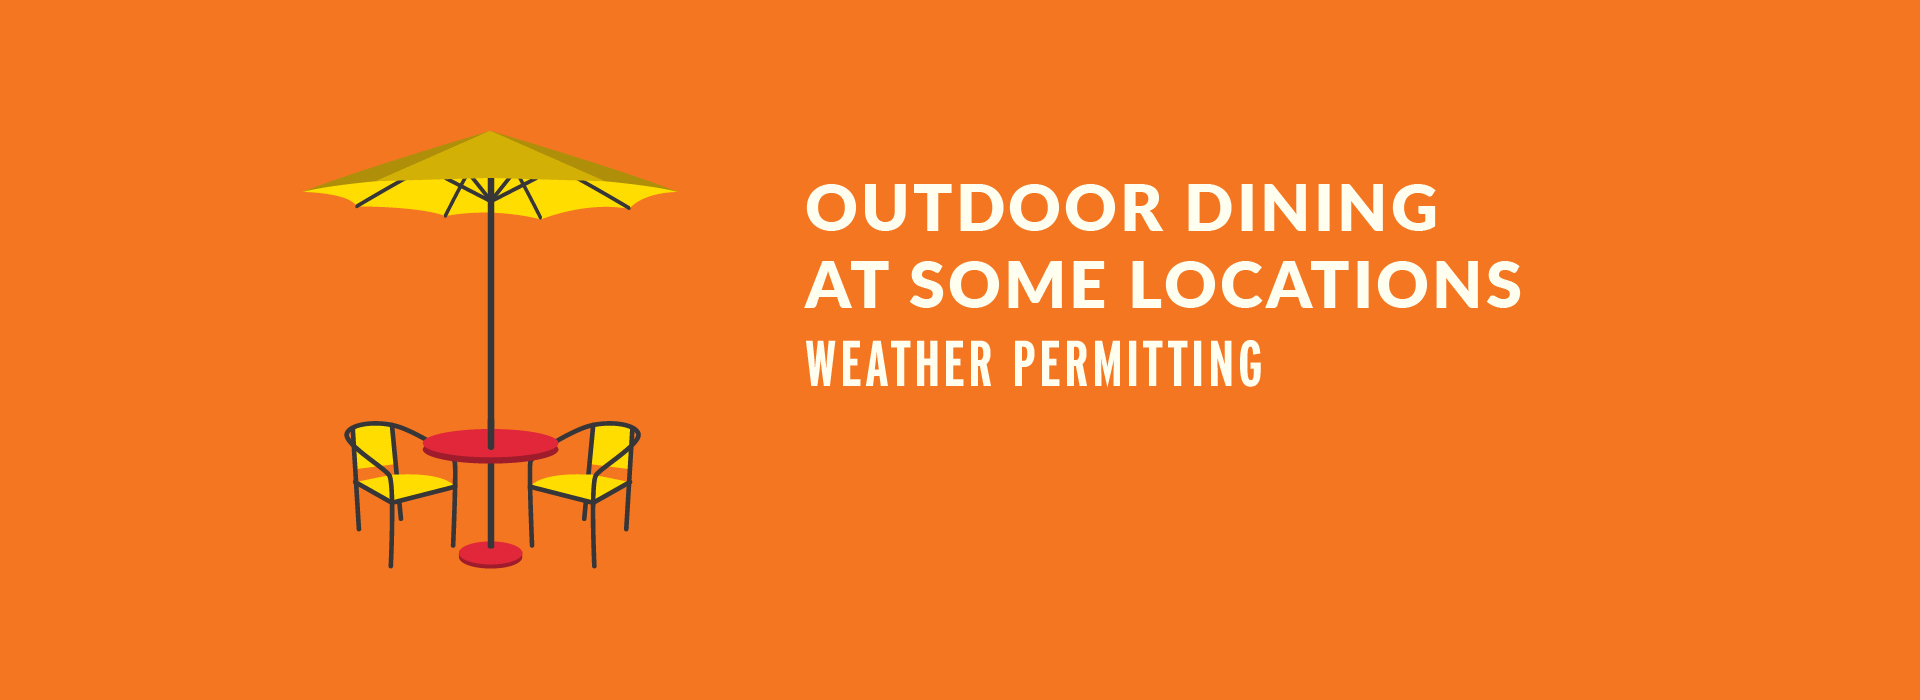 OUTDOOR DINING AVAILABLE AT SOME LOCATIONS